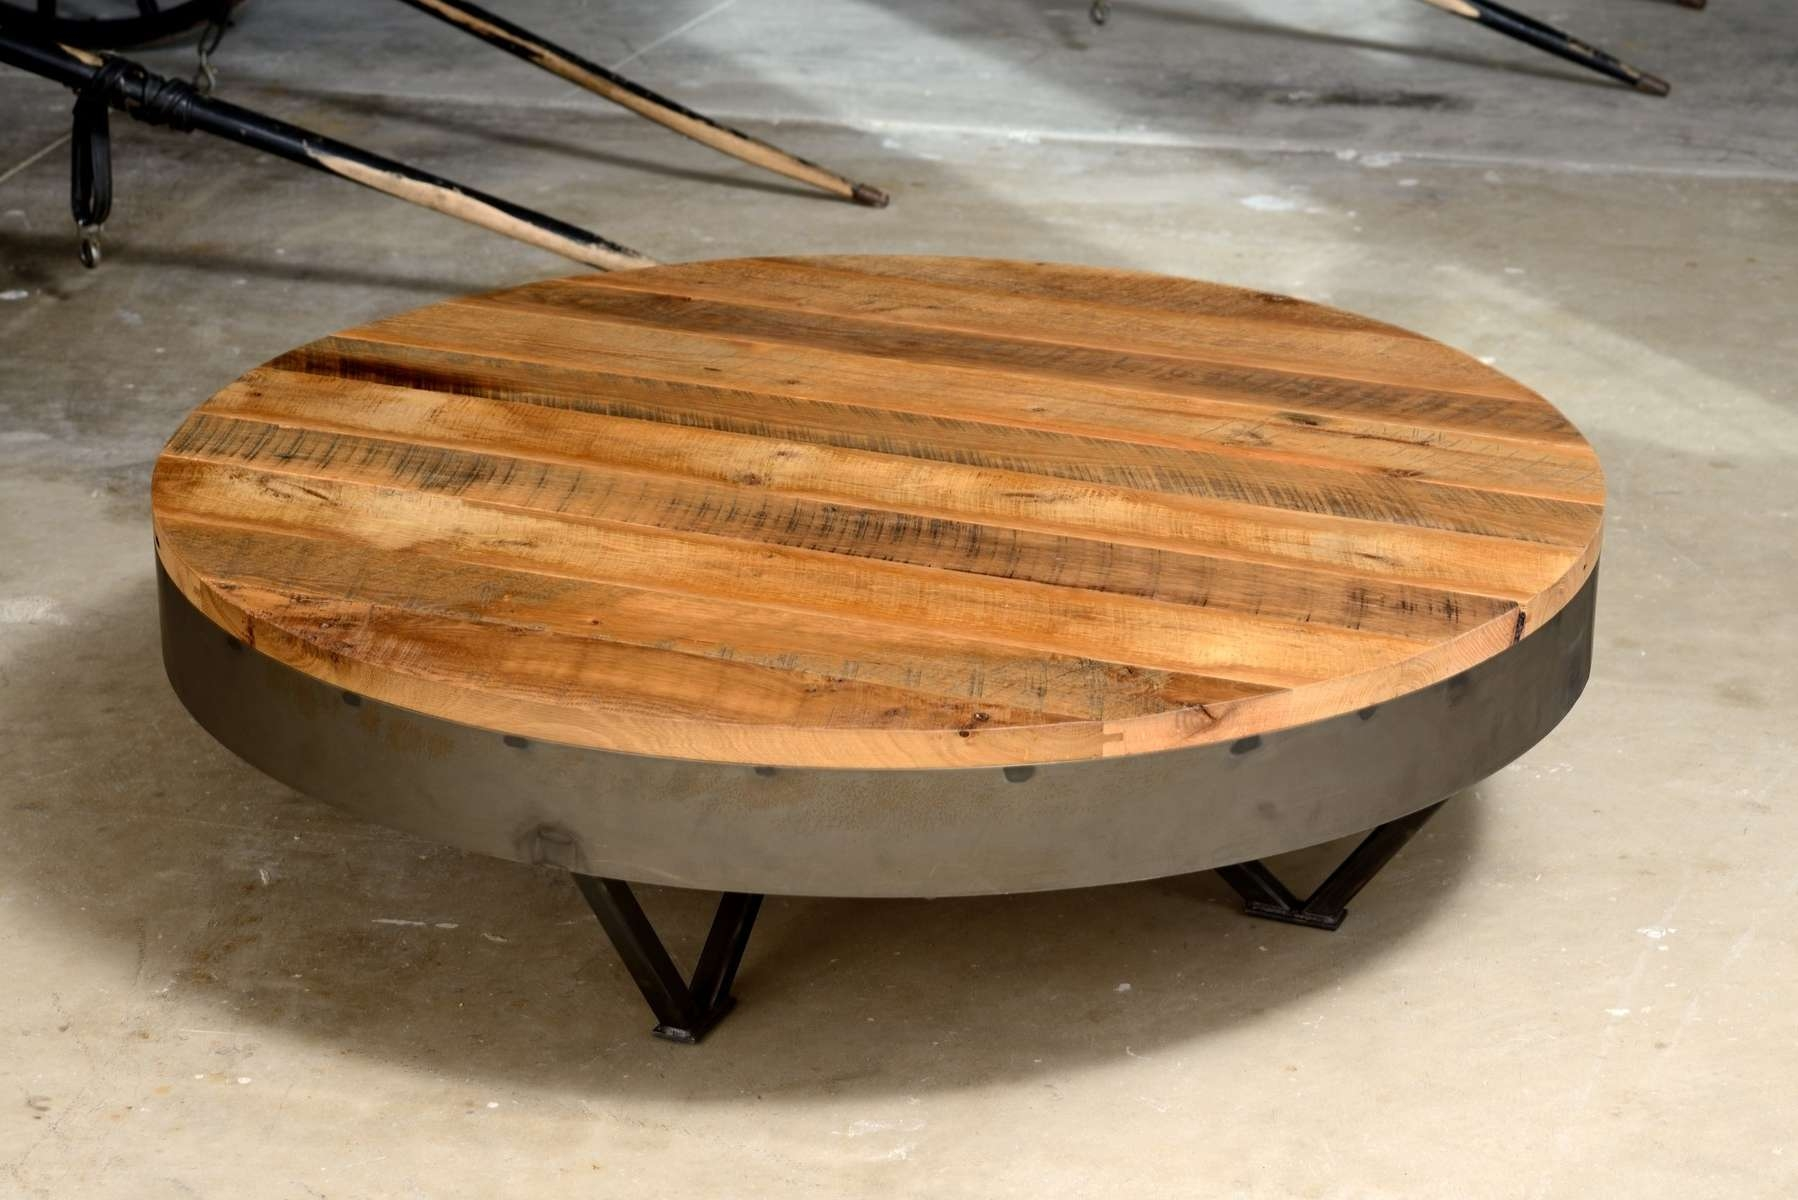 2018 Short Legs Coffee Tables Throughout Short Coffee Table Legs – Home Design Ideas And Pictures (View 8 of 20)